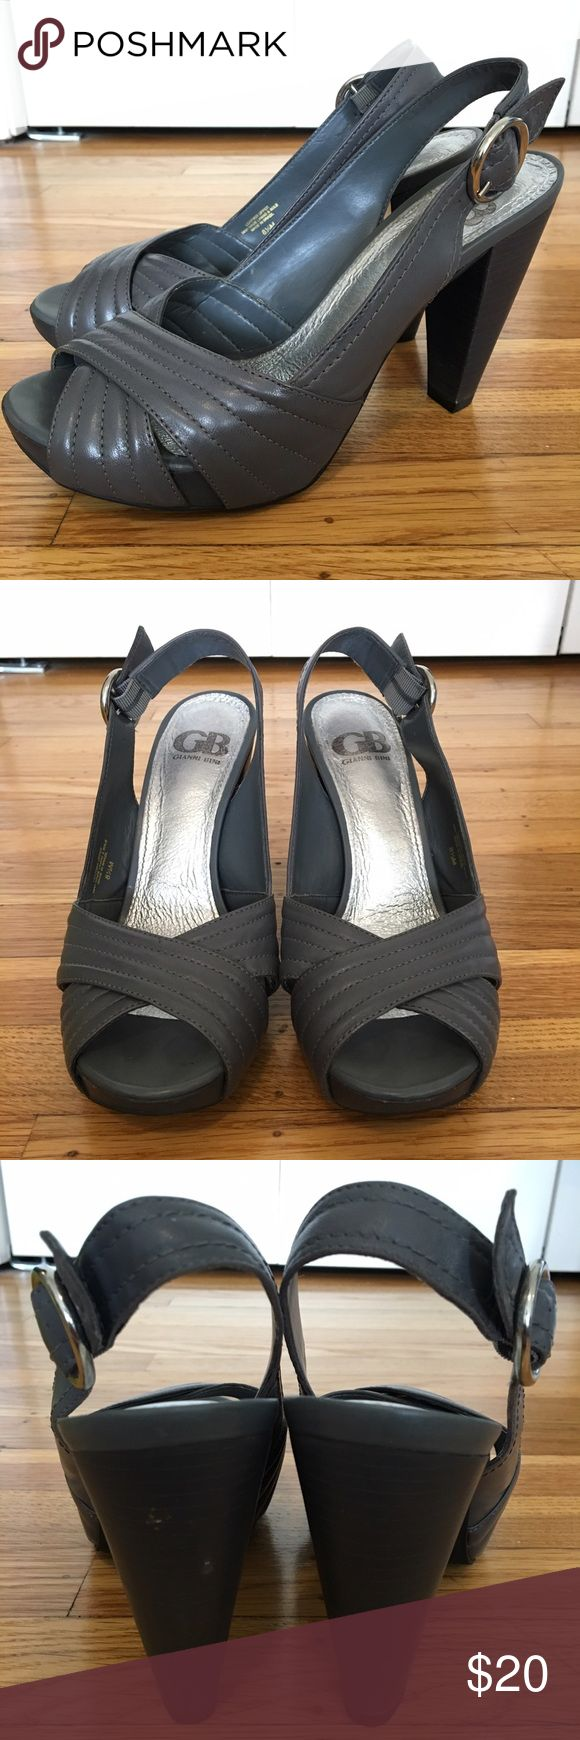 "gianni bini gray platform heels gianni bini spotlight heels in havana gray. 4.75"" stacked heel with 1"" platform. scratch on the left of back heel. Gianni Bini Shoes Heels"